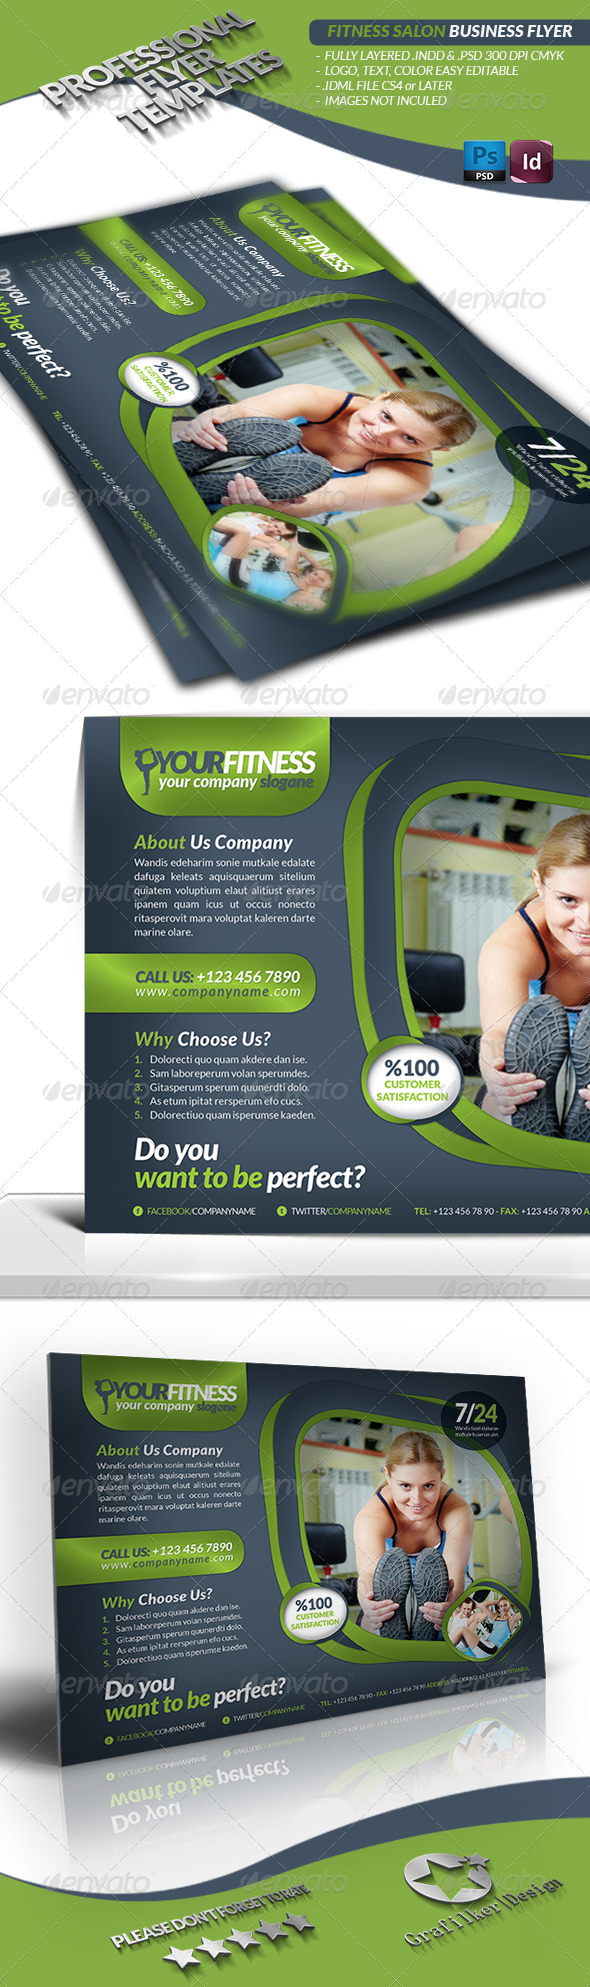 Fitness Salon Business Flyer - Flyers Print Templates